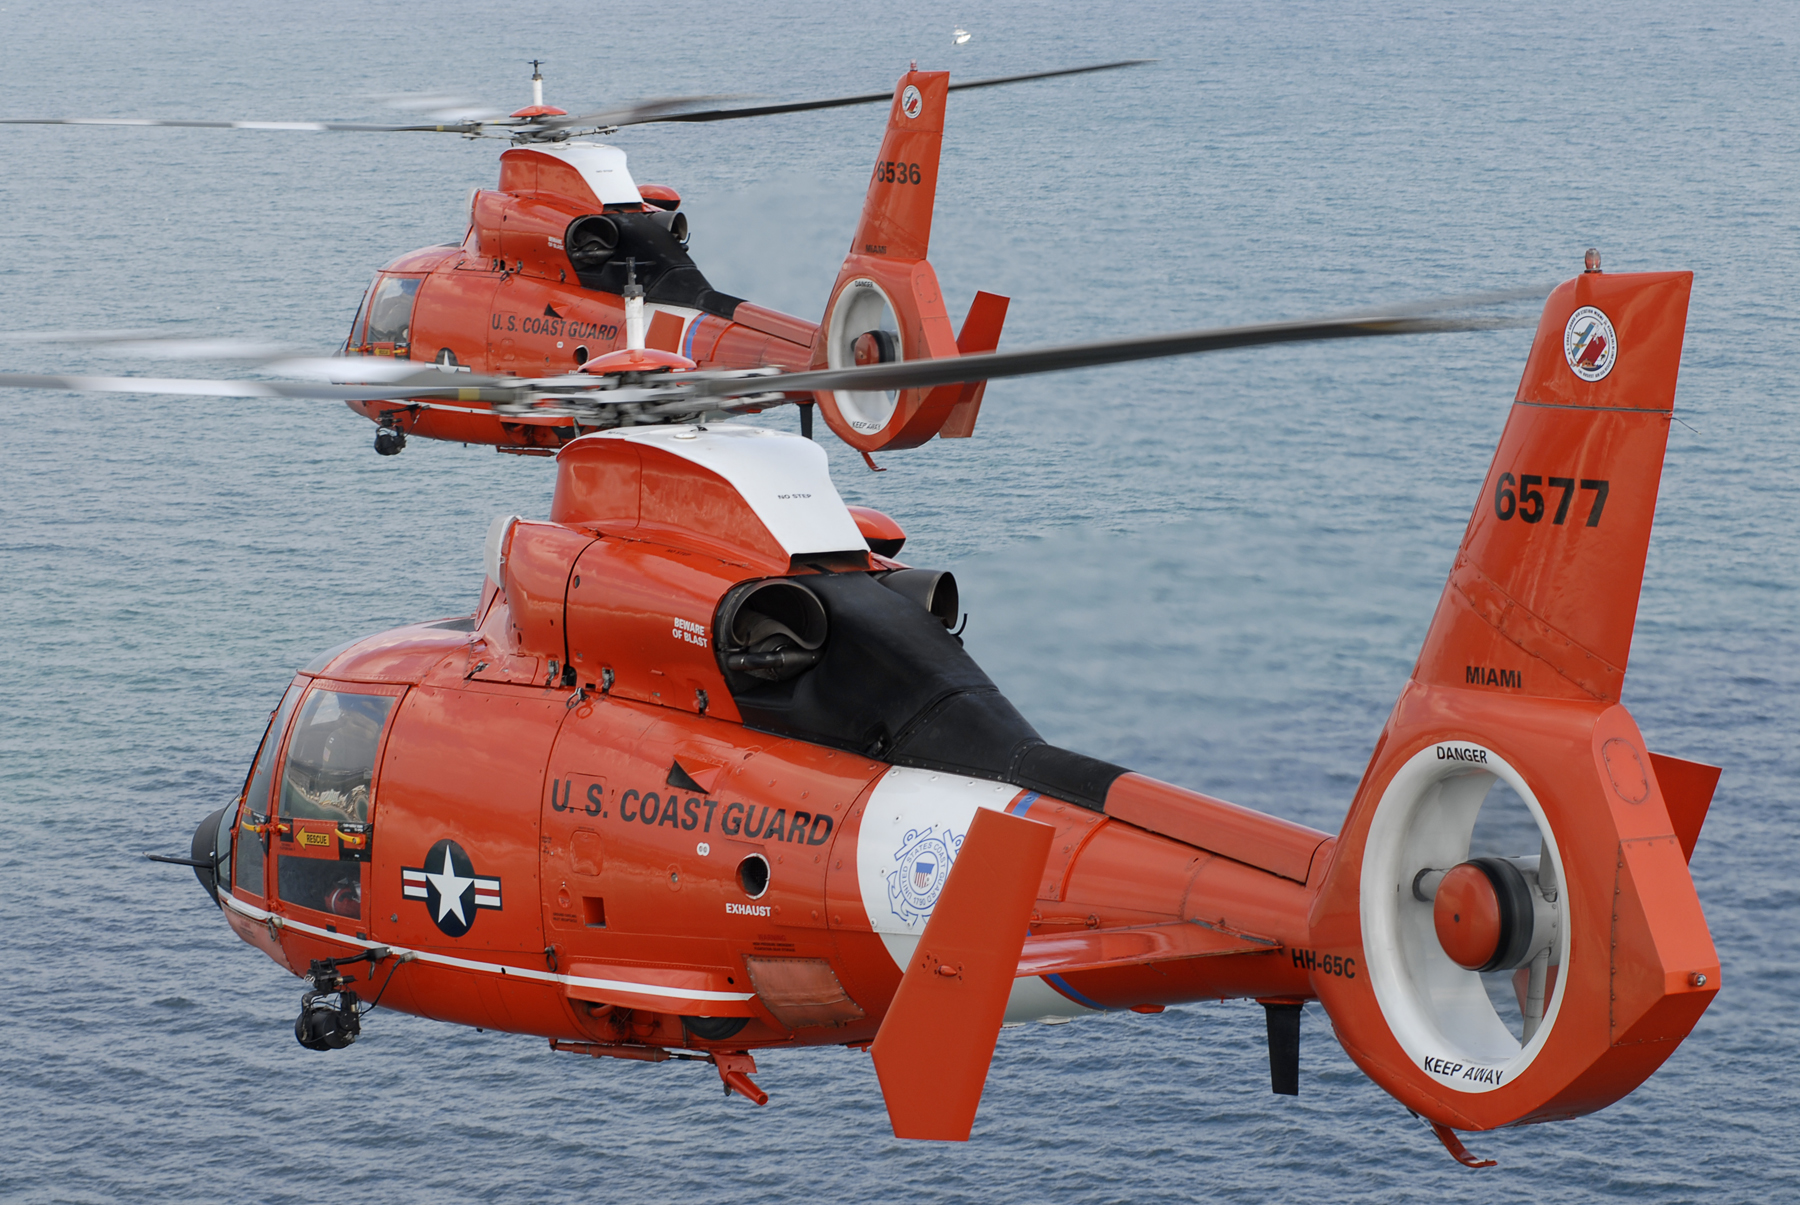 File:Two coast guard HH-65C Dolphin helicopters.jpg - Wikimedia Commons